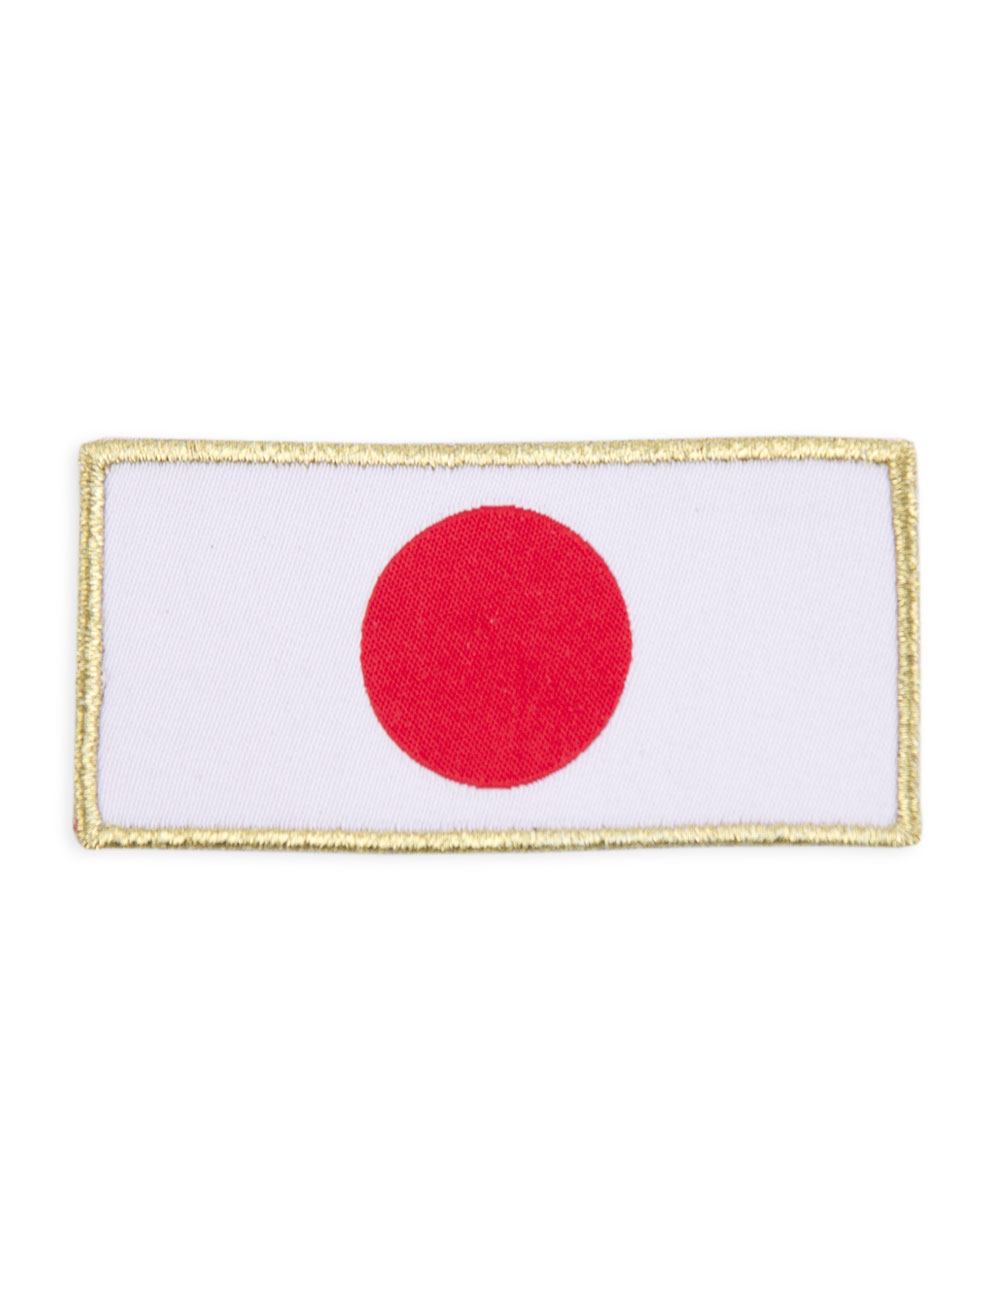 Japan National Flag